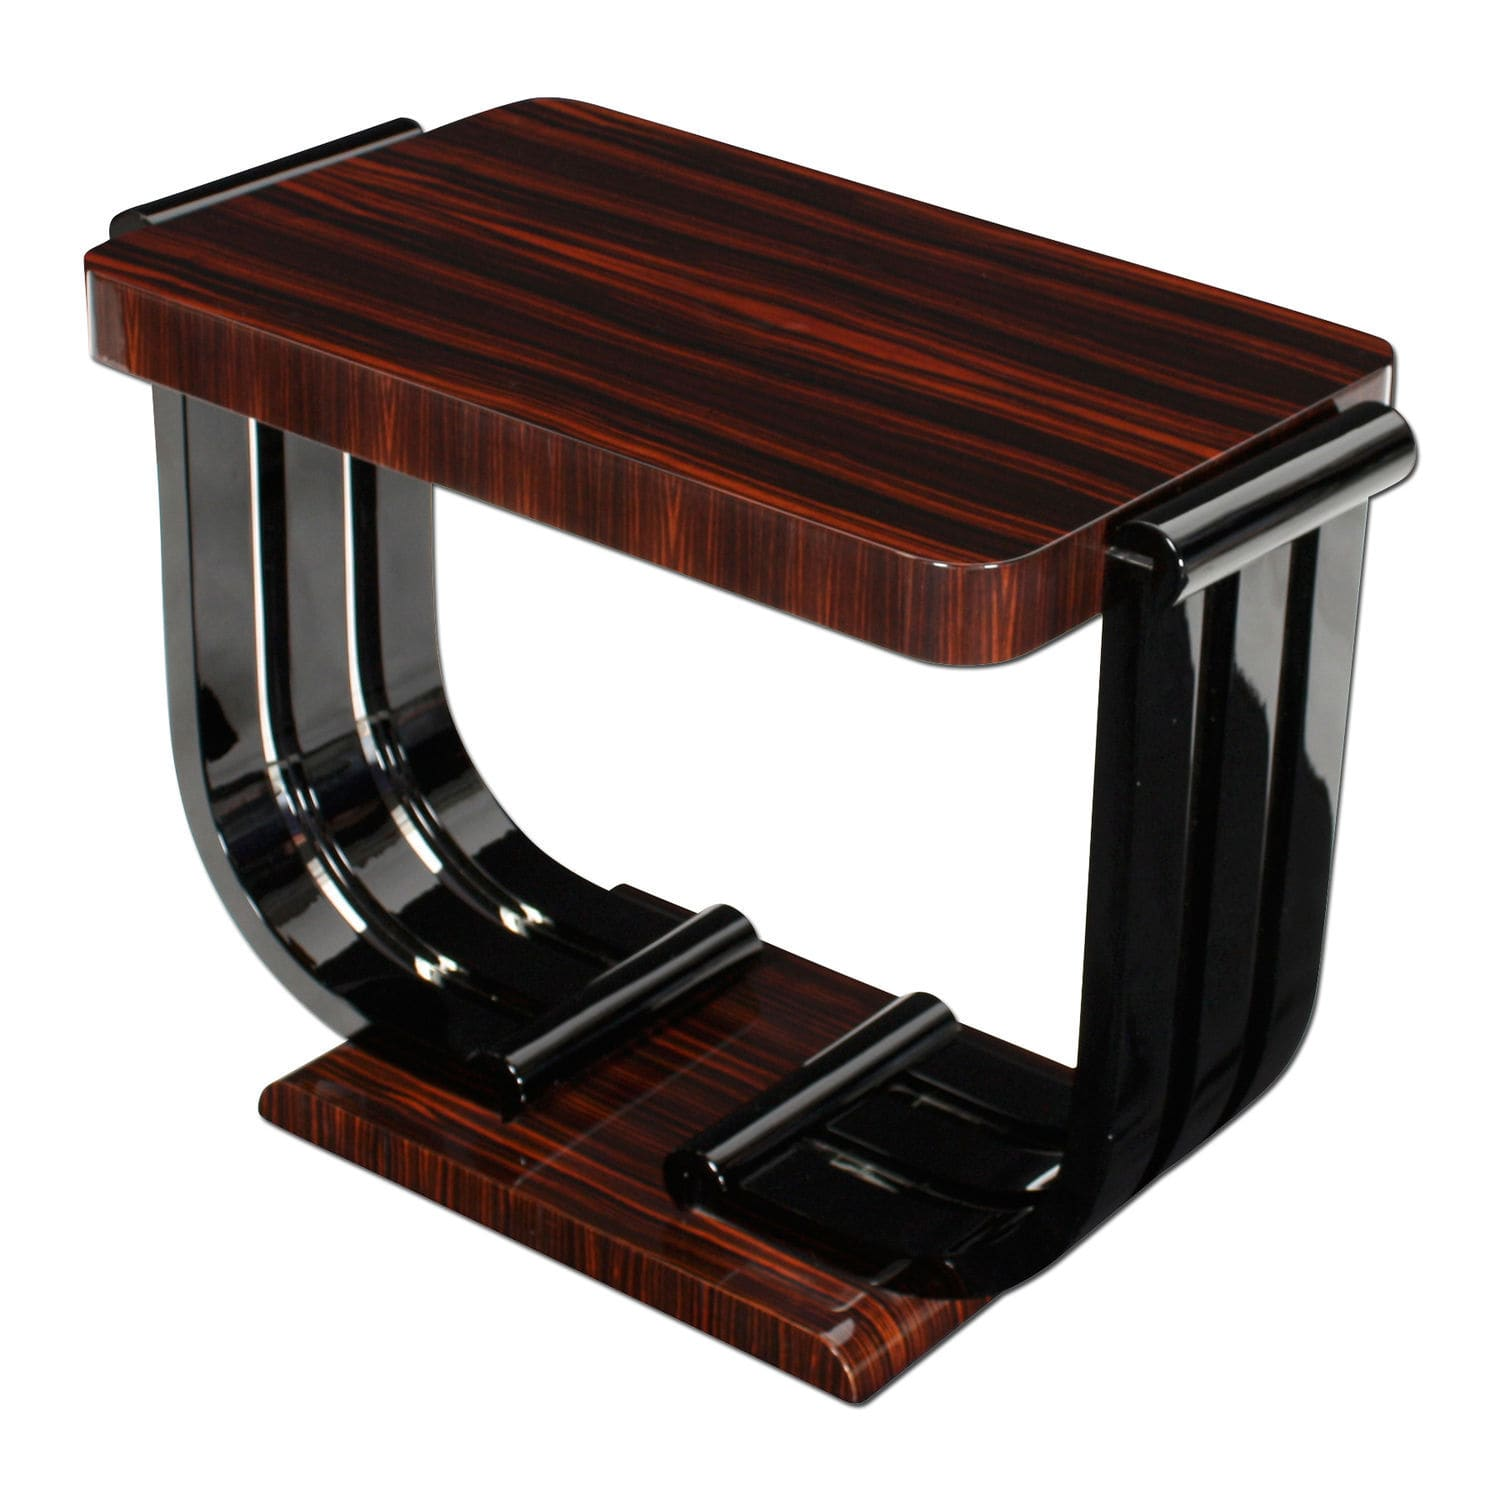 Art Deco Side Table / Macassar Ebony / Glossy Varnished Wood / Rectangular  BS051 Cygal Art ...